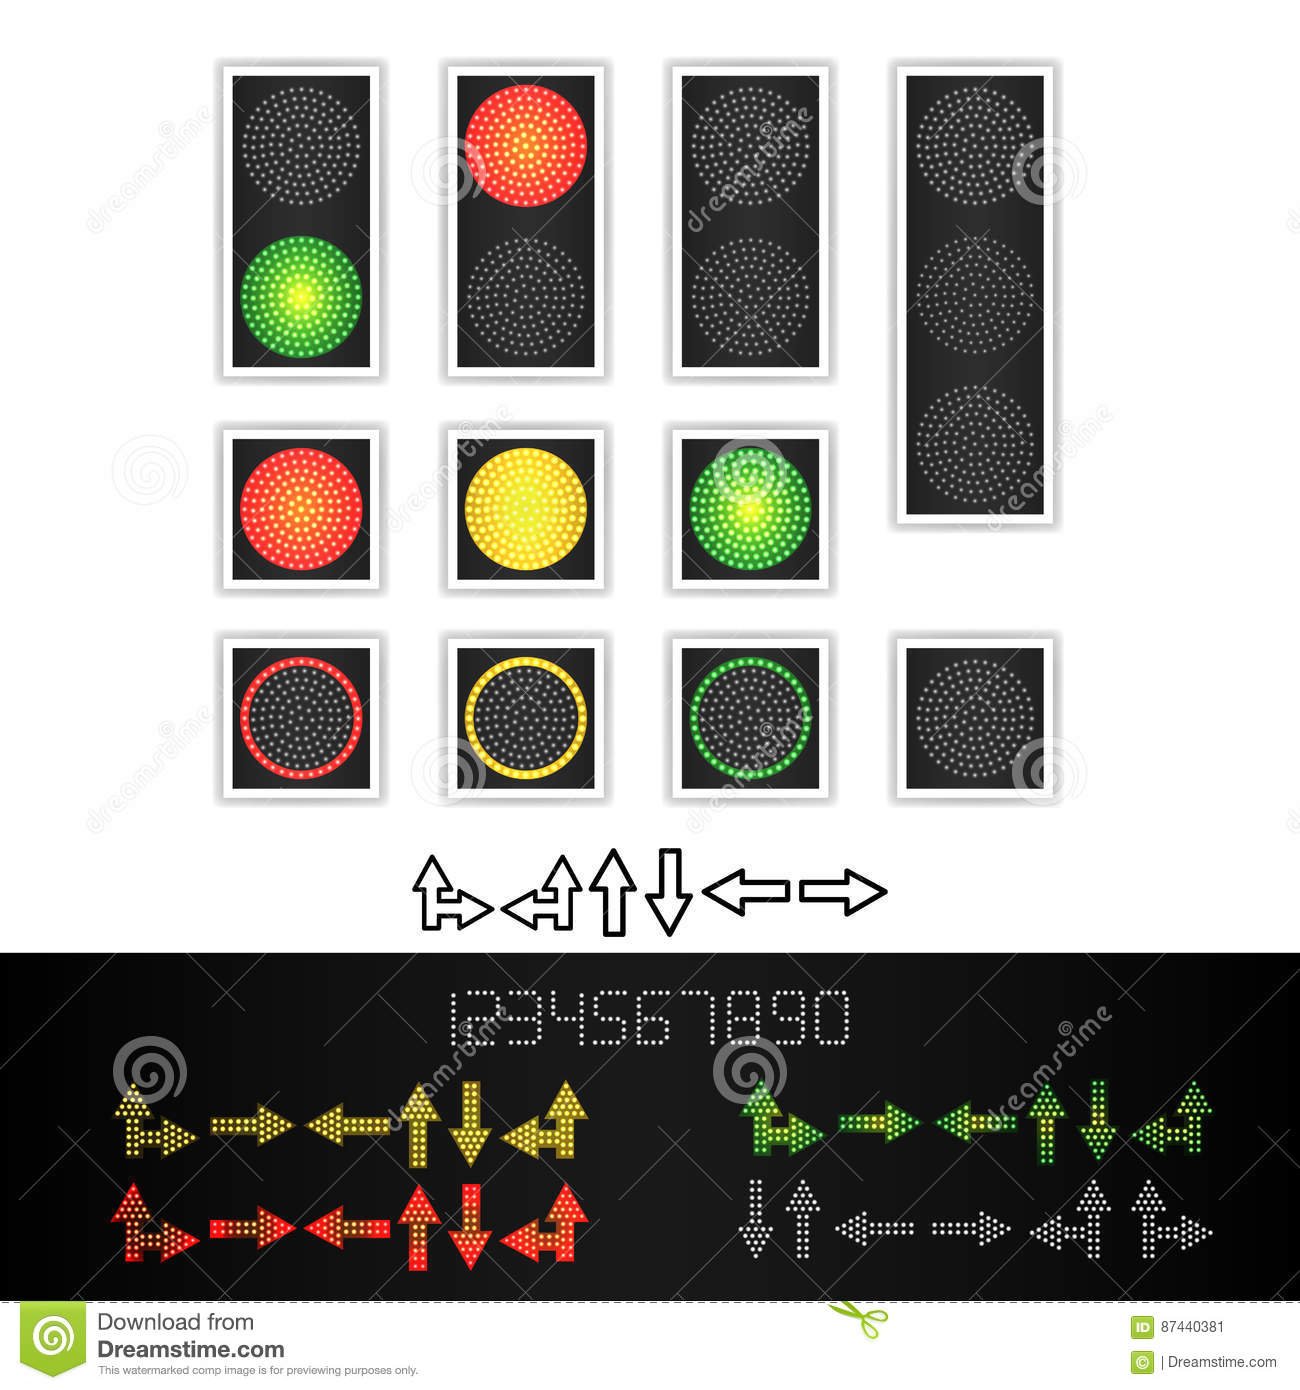 how to make a red light turn green